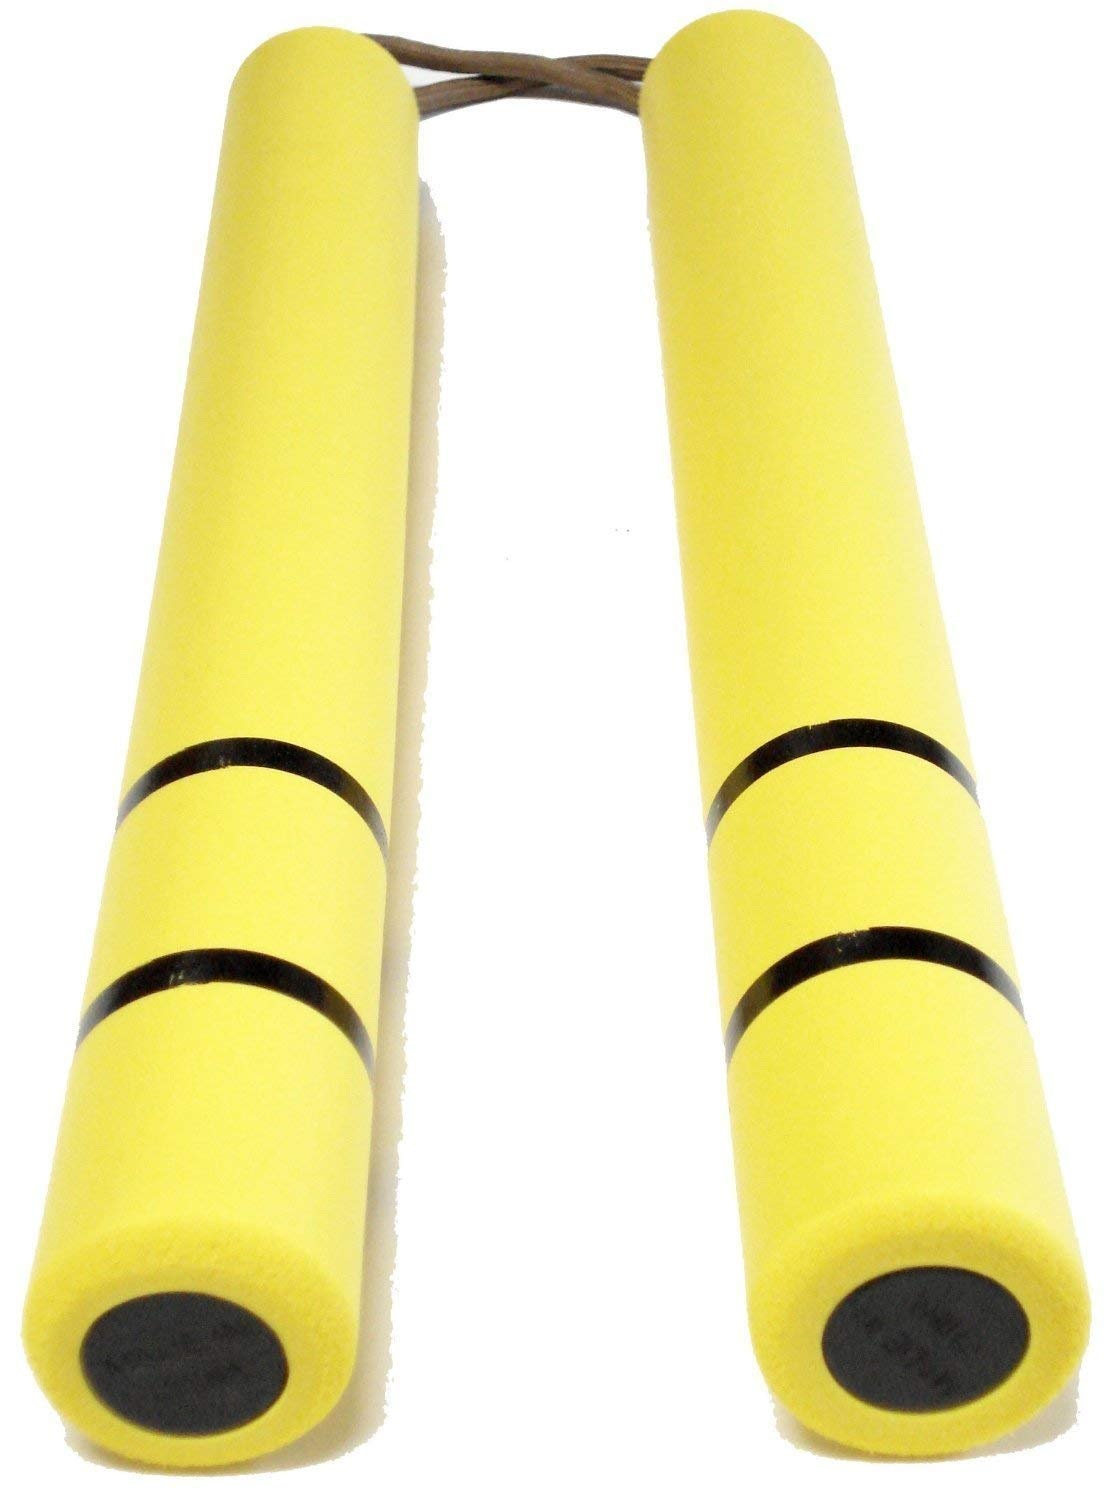 Dragon Bruce Lee Game of Death yellow yellow rubber nunchaku